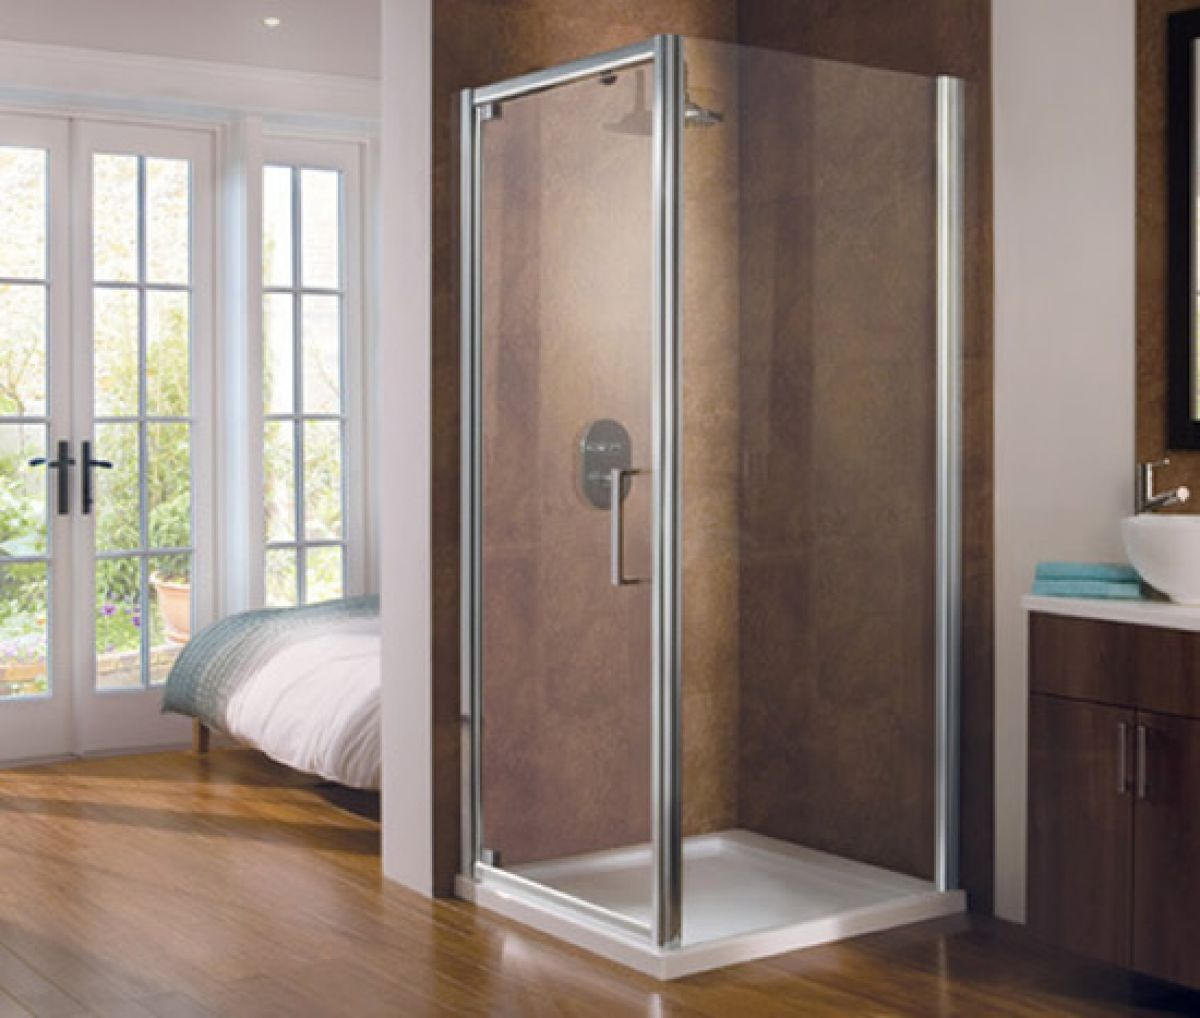 Manhattan m8 1000mm pivot shower door ukbathrooms for 1000mm shower door